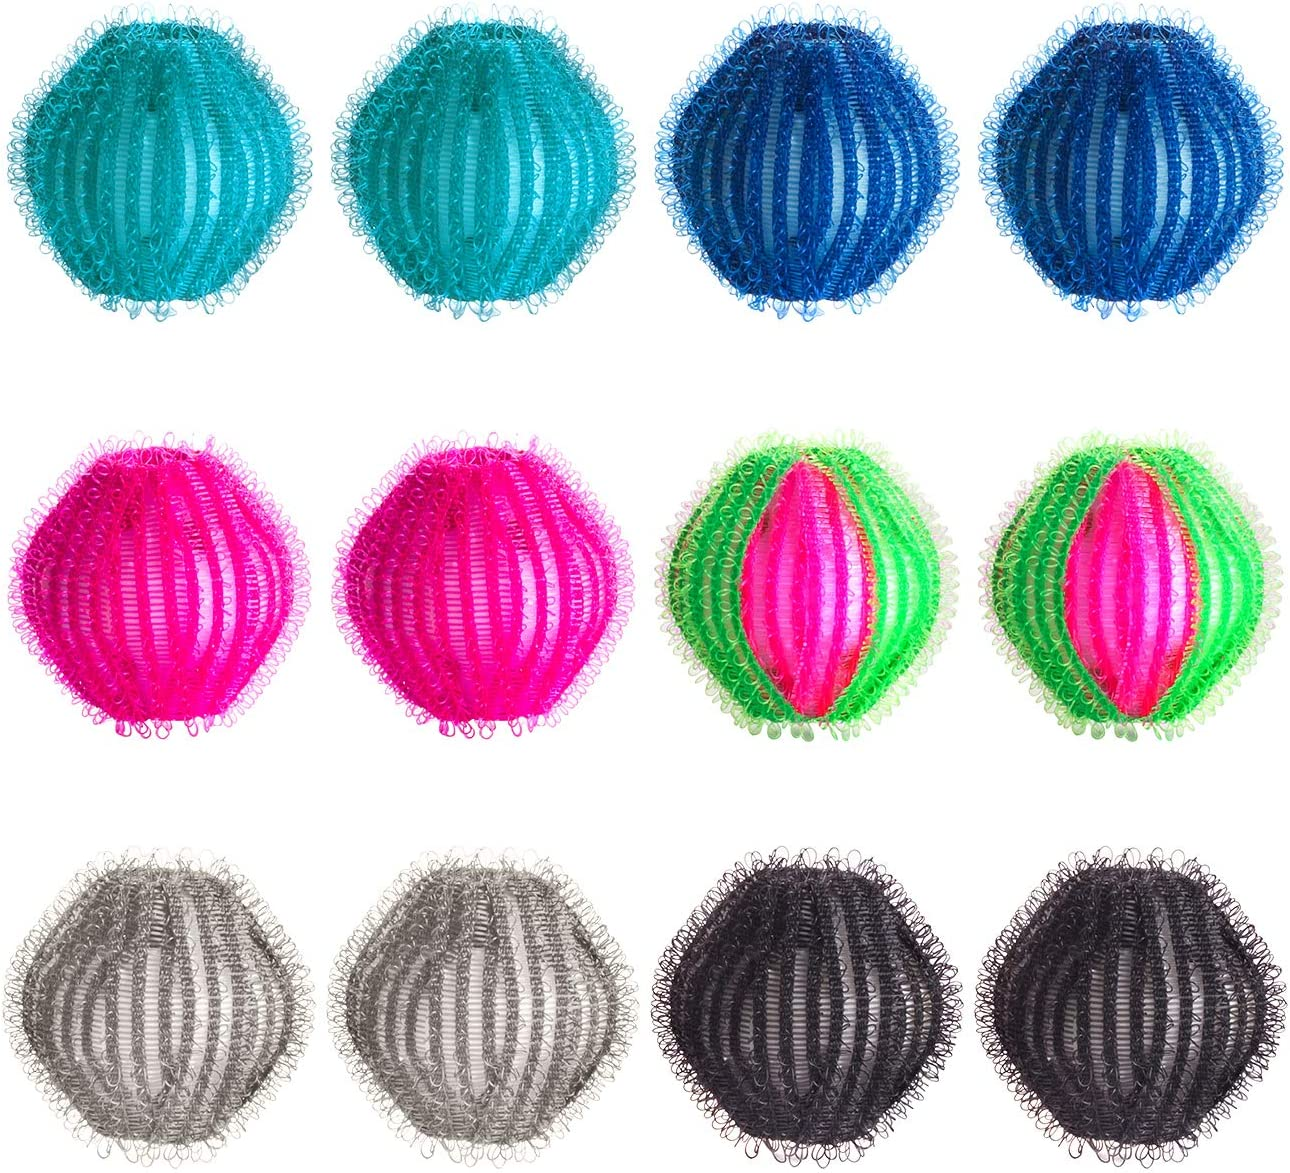 12 pcs Pet Hair Remover for Laundry Lint Remover Washing Balls Lint Remover Balls Magic Hair Removal Plastic Laundry Ball Reusable Dryer Balls Washer from Dogs and Cats